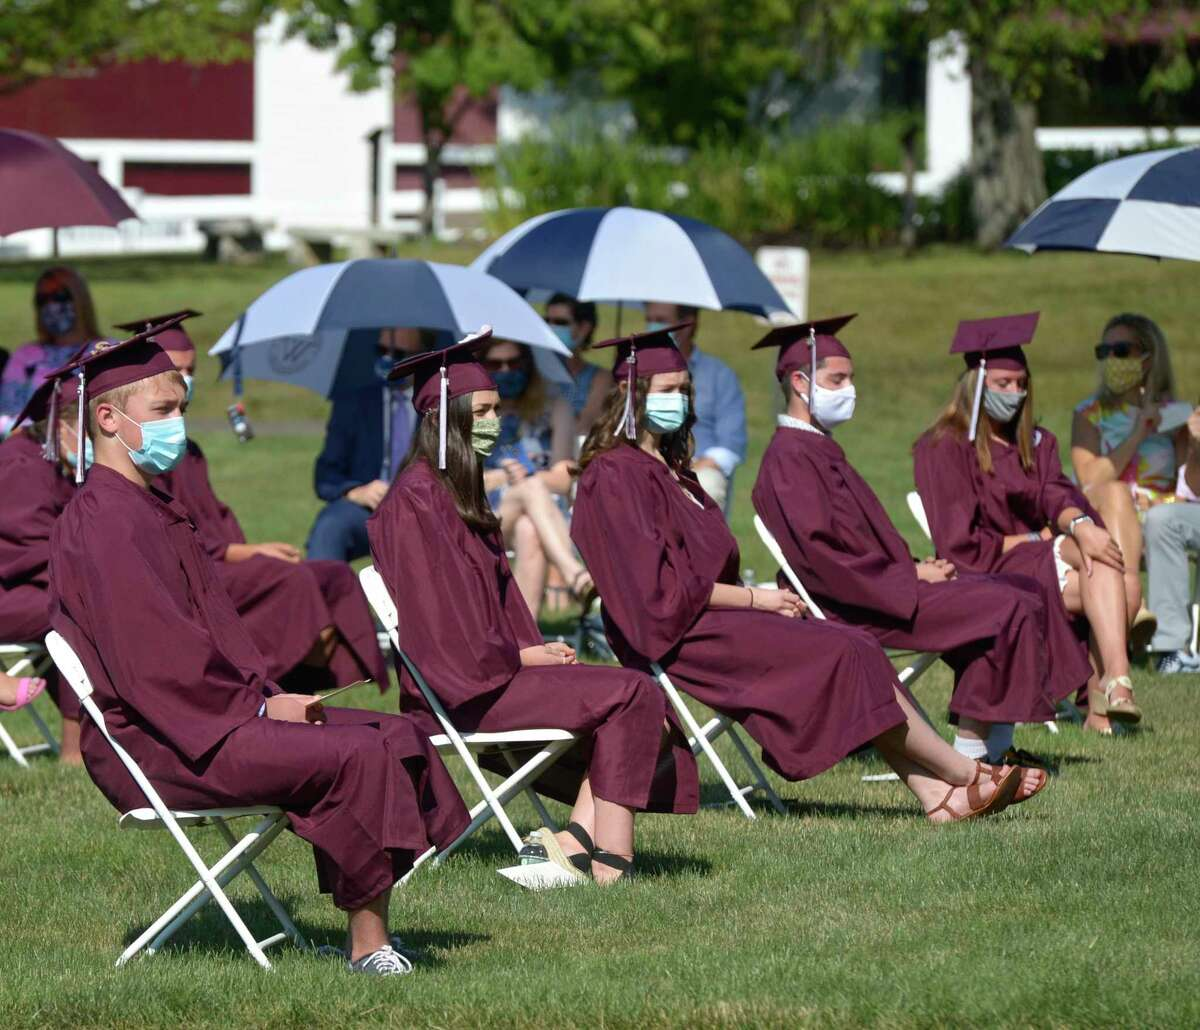 Photographs from the Wooster School 2020 Commencement Exercises, Monday, July 6, 2020, on the school campus, Danbury, Conn. The school will require vaccines for staff and eligible students as part of its 2021-22 return-to-school plan.